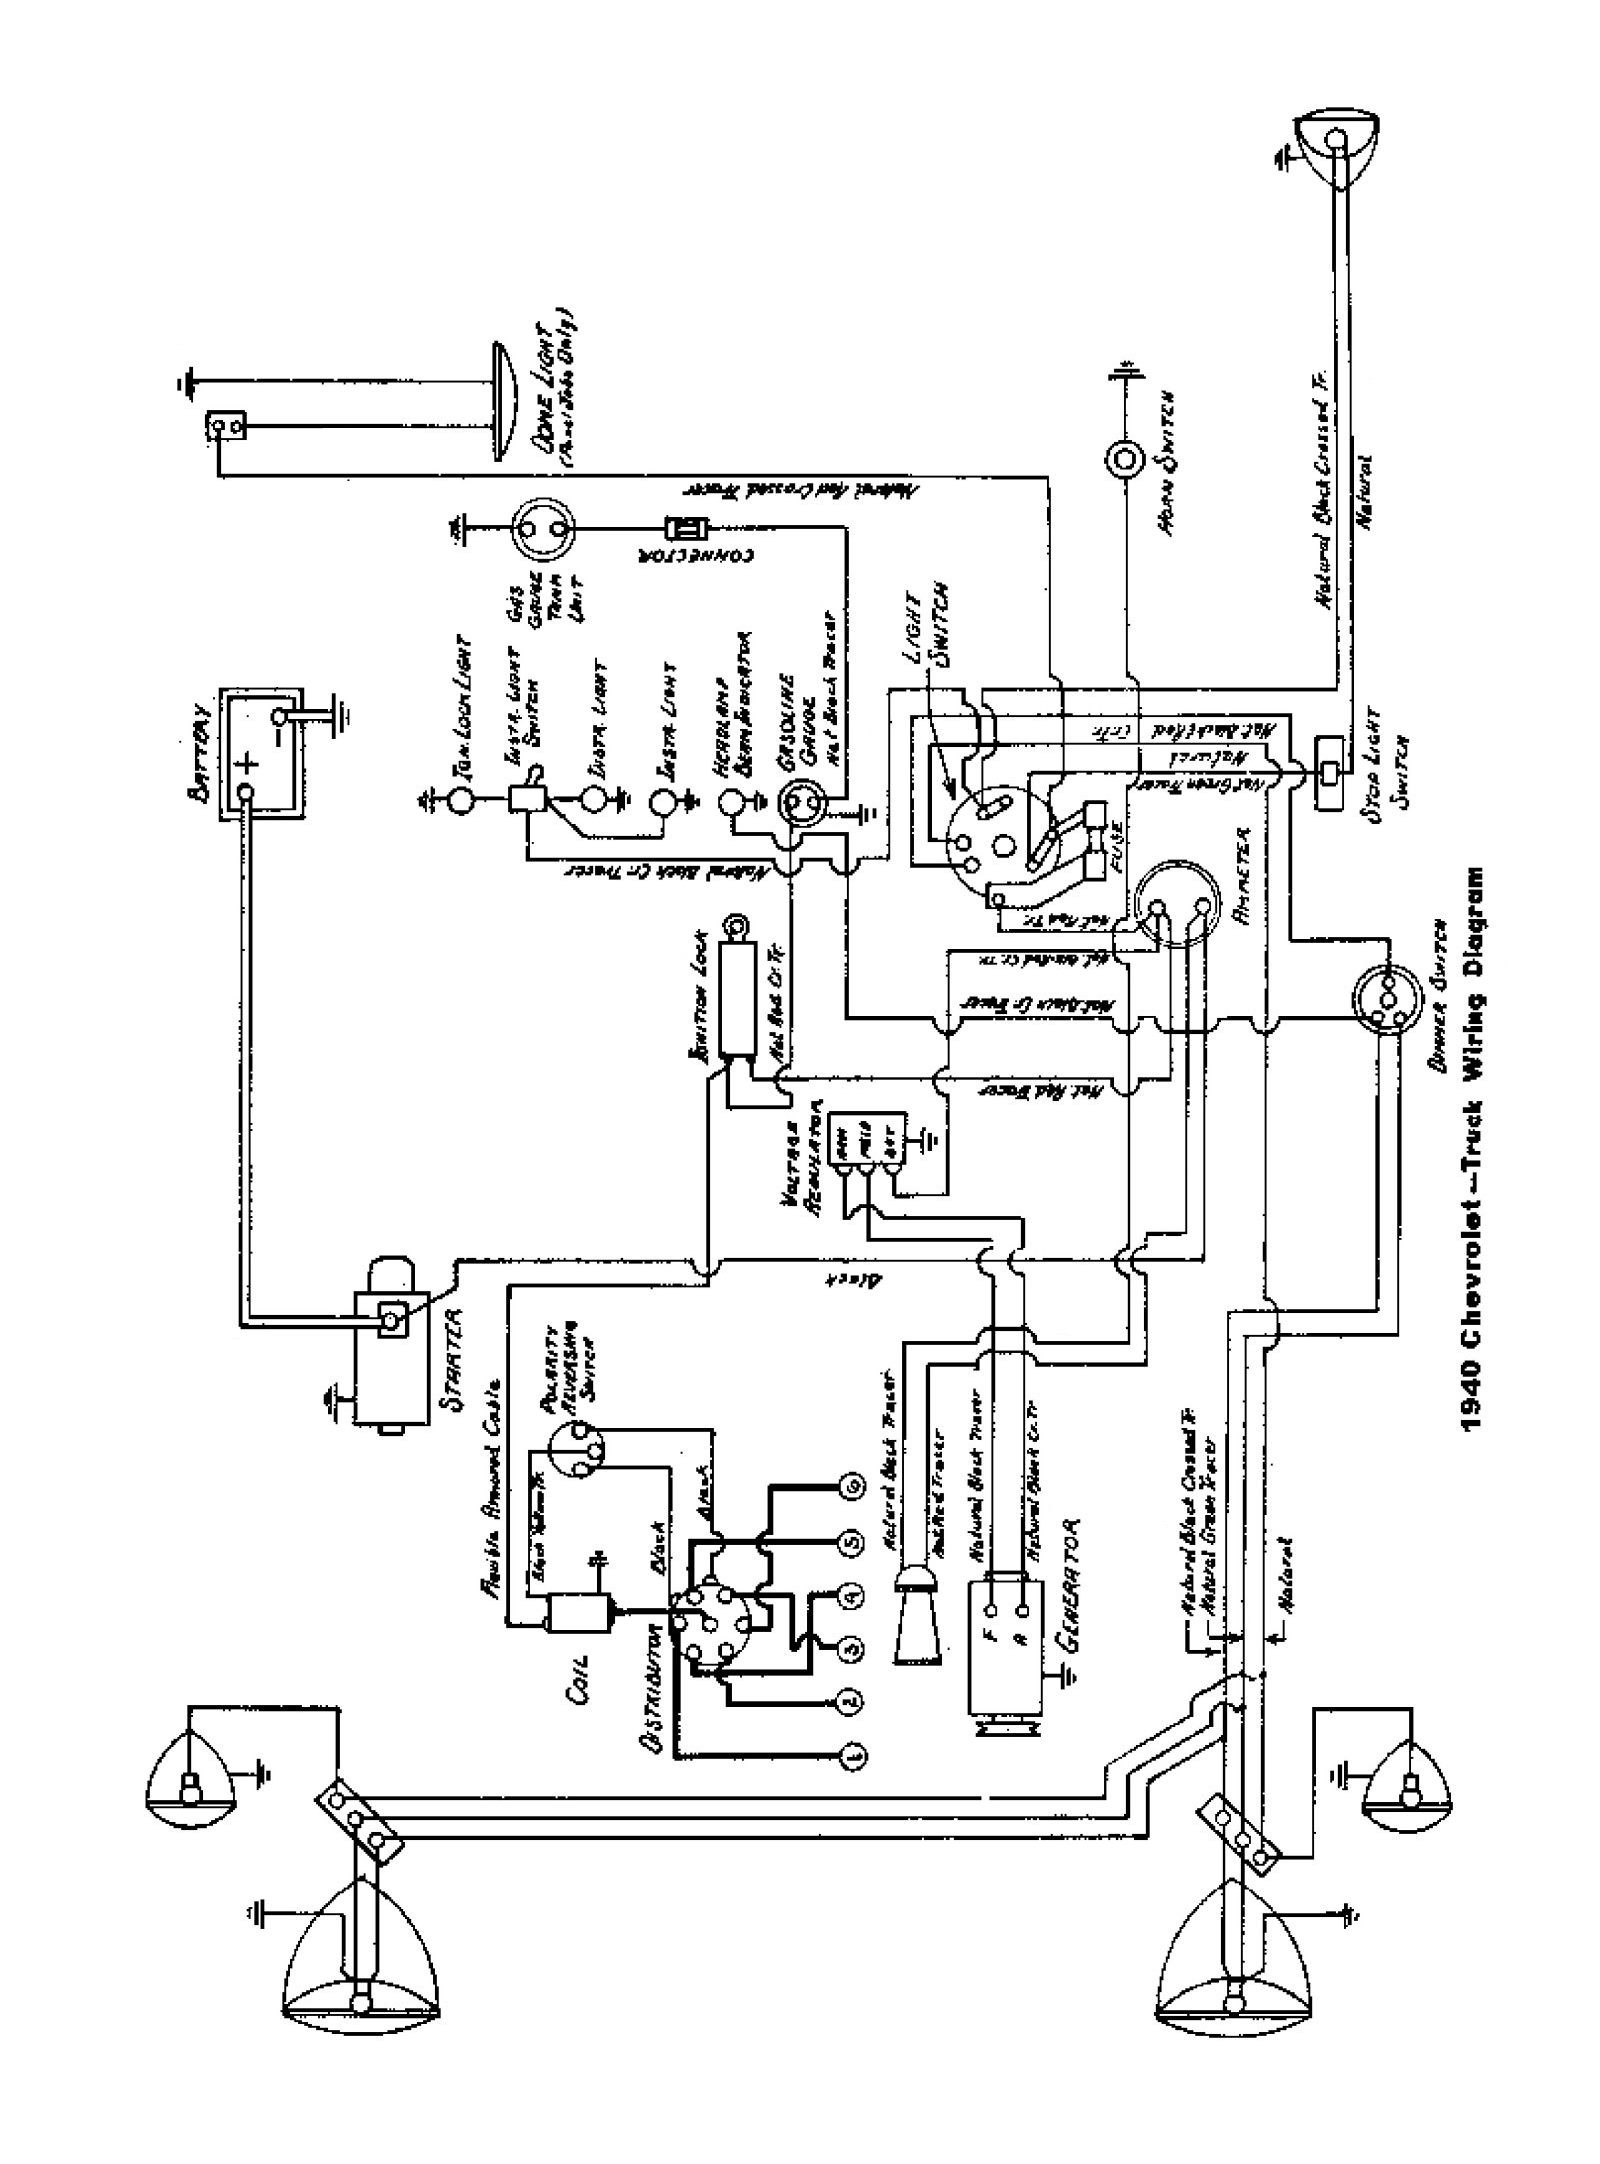 Chevy Bel Air Ignition Switch Wiring Diagram